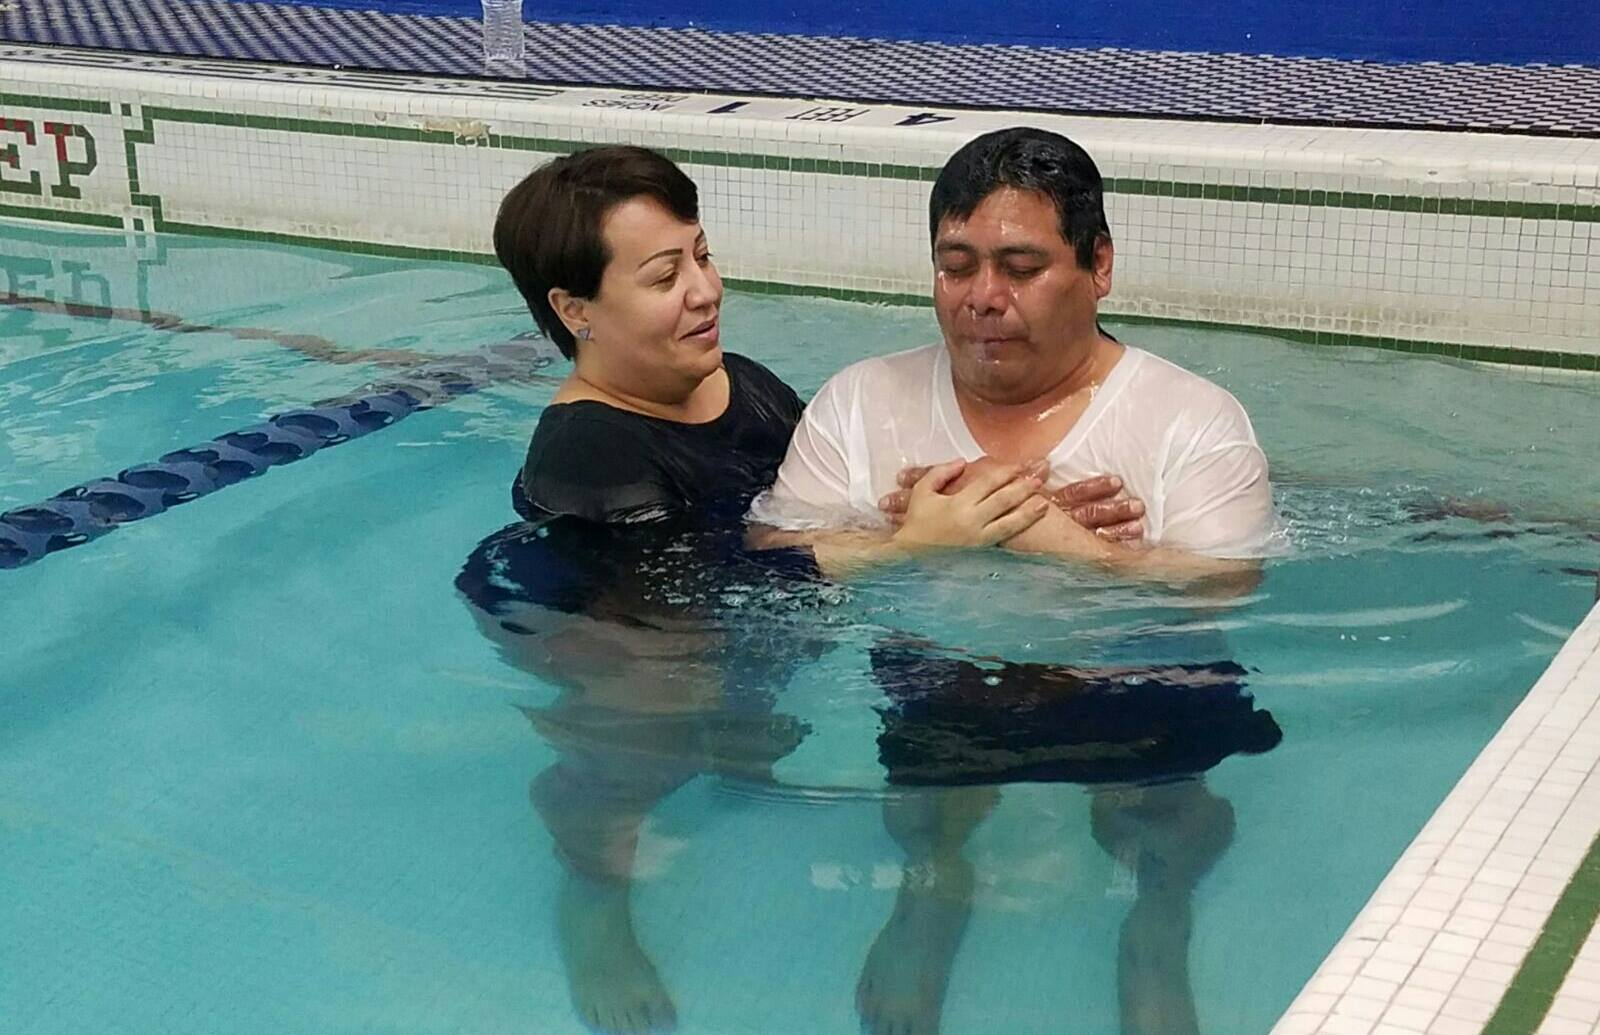 Lourdes baptizing a brother, who surrendered his life to Jesus, since the homeless outreach work began.